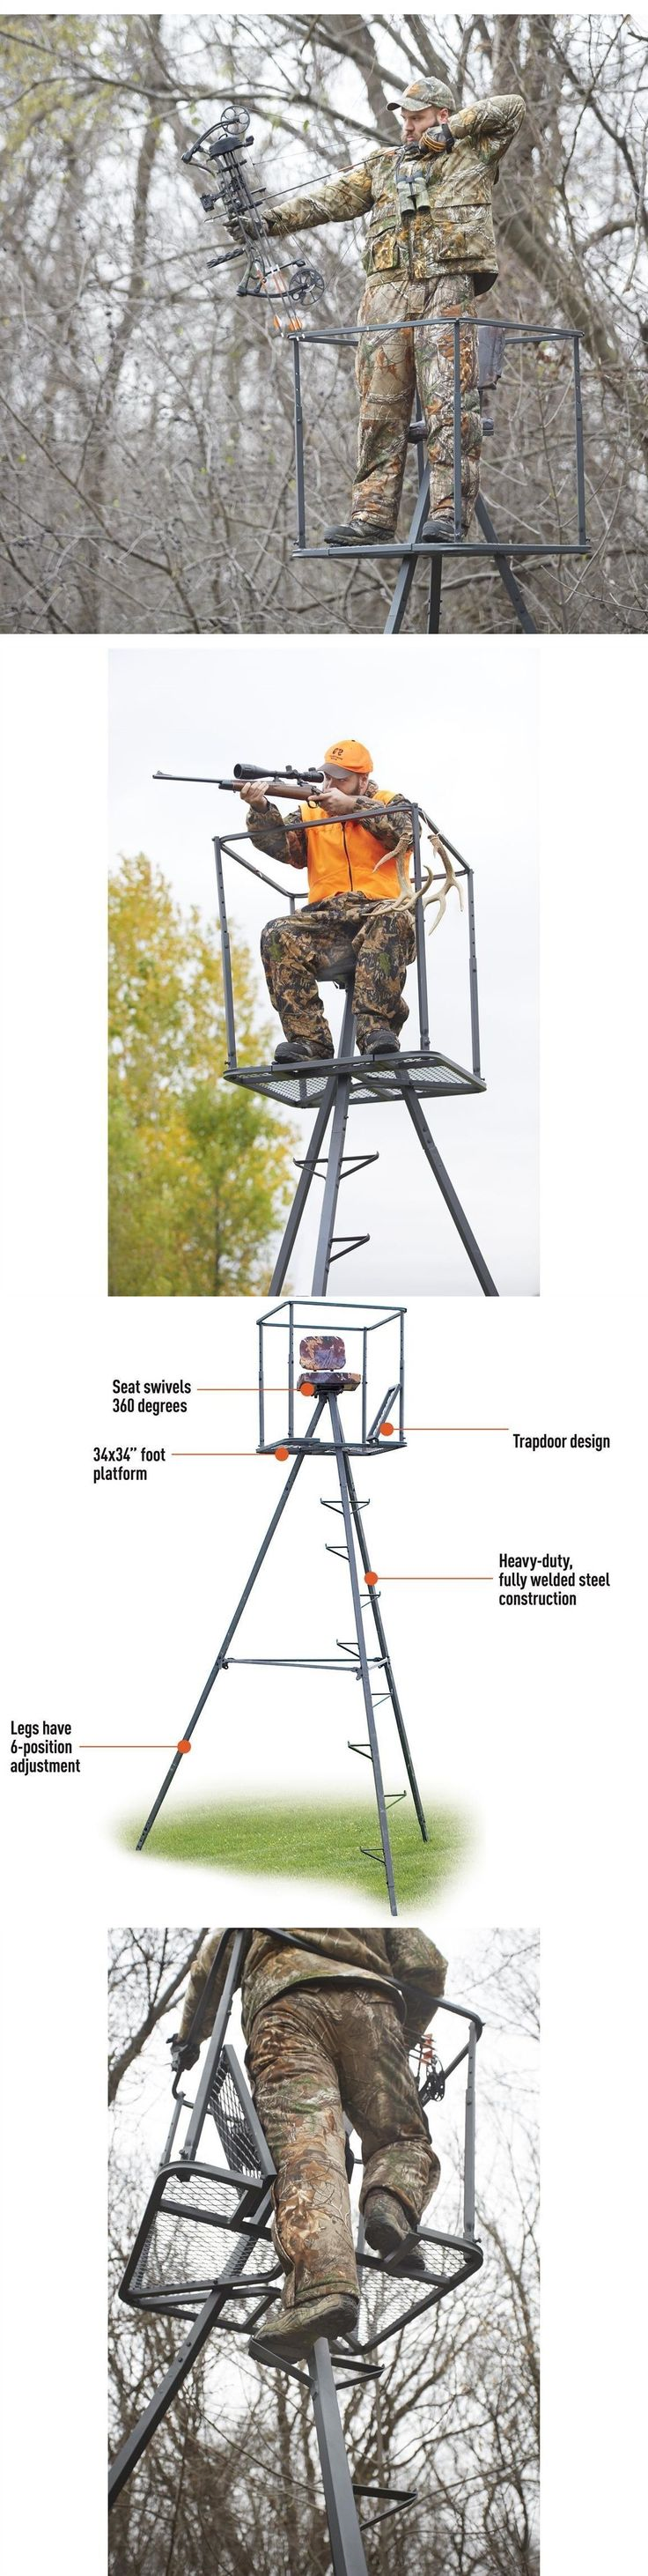 Tree Stands 52508: Tripod Deer Stands 13 Foot Hunting Big Game Hunter Ladder Shooting Tree Blind -> BUY IT NOW ONLY: $219.5 on eBay!